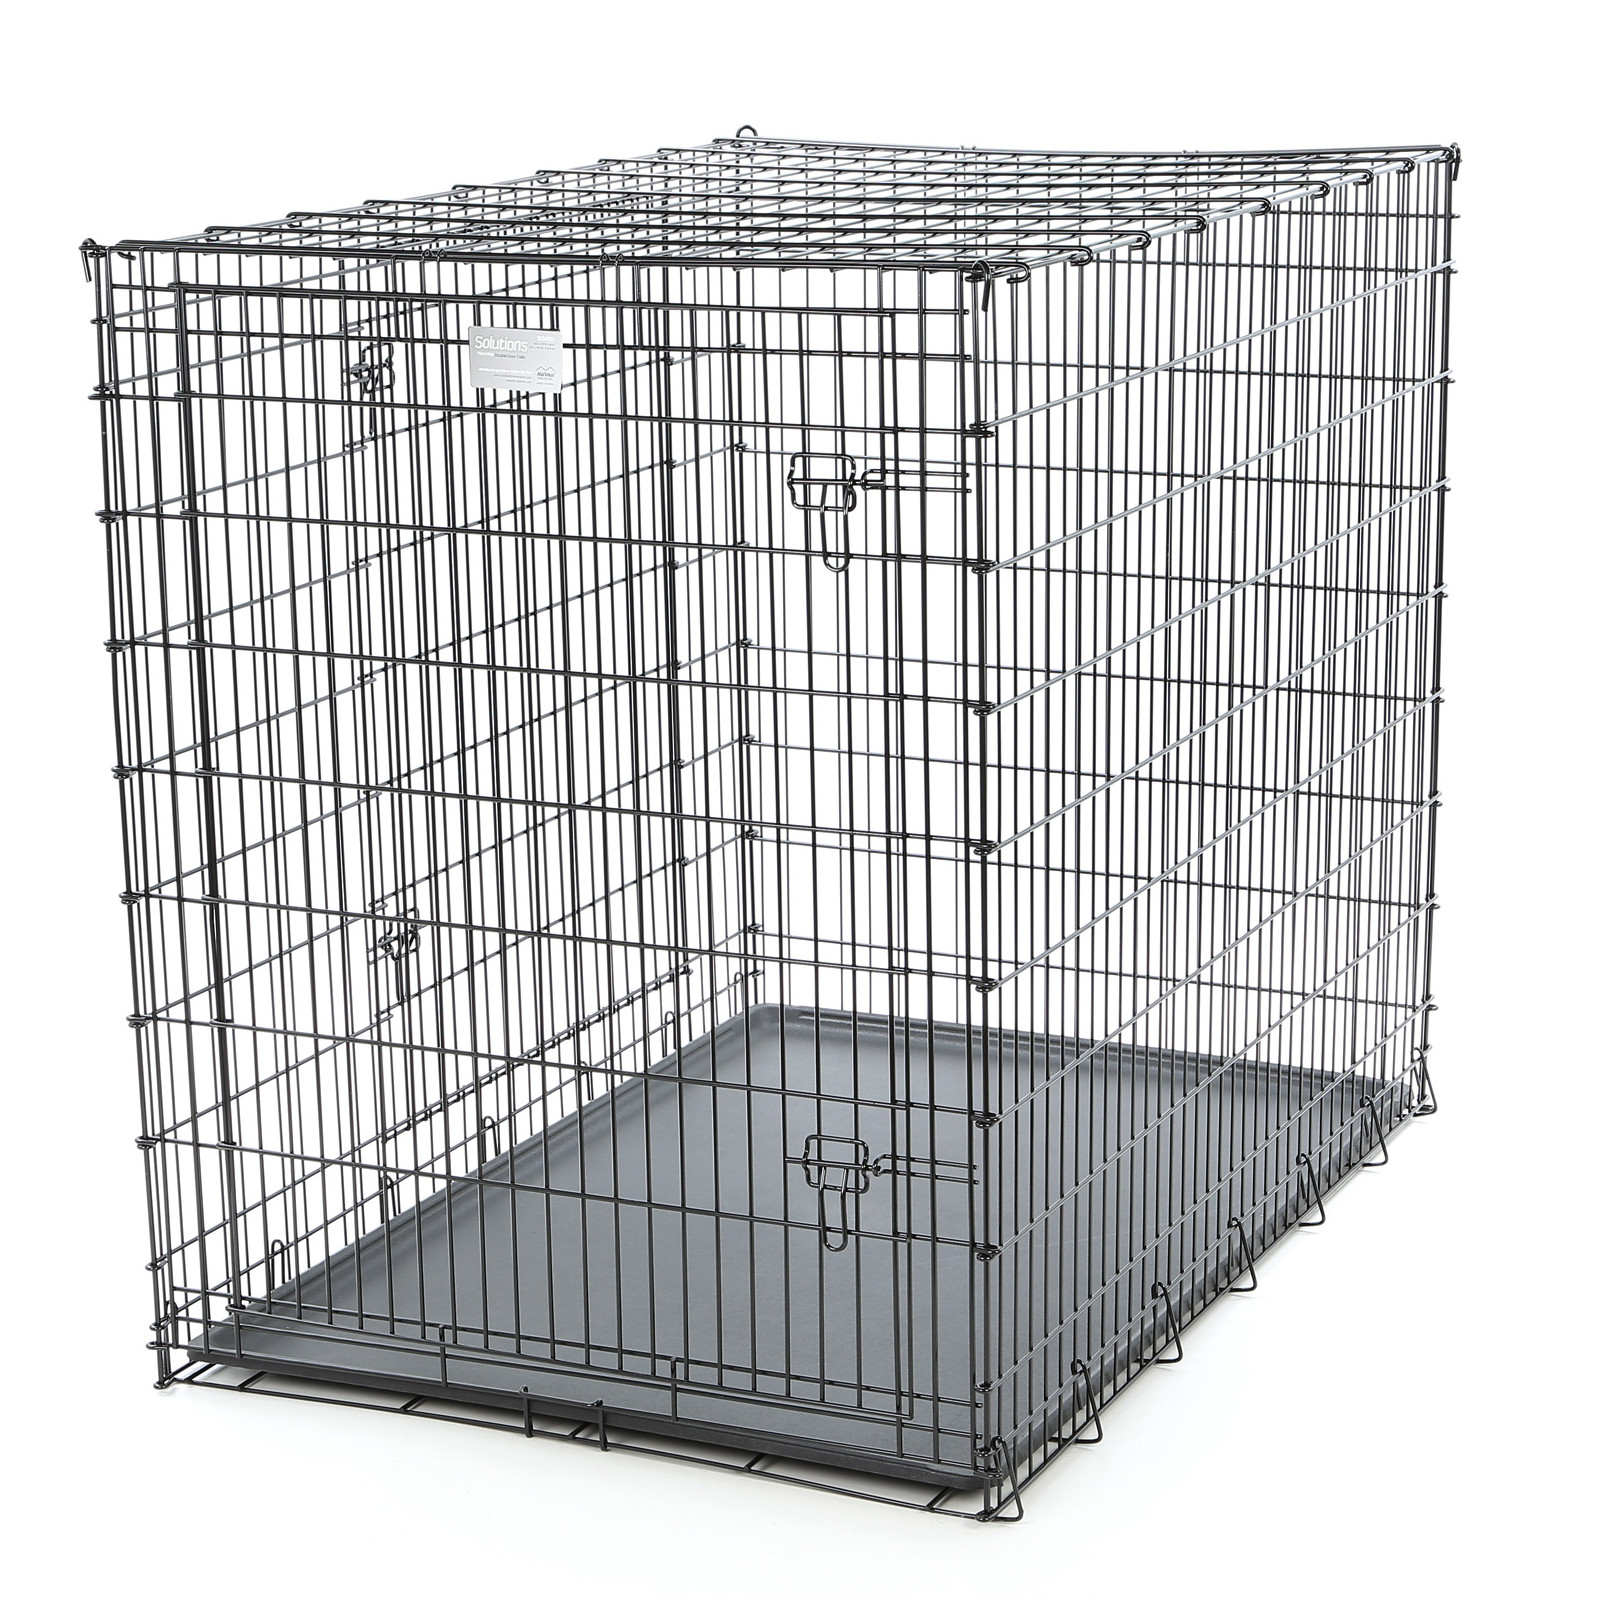 Midwest Folding Dog Crate | Midwest Dog Crates | 48 Dog Crate